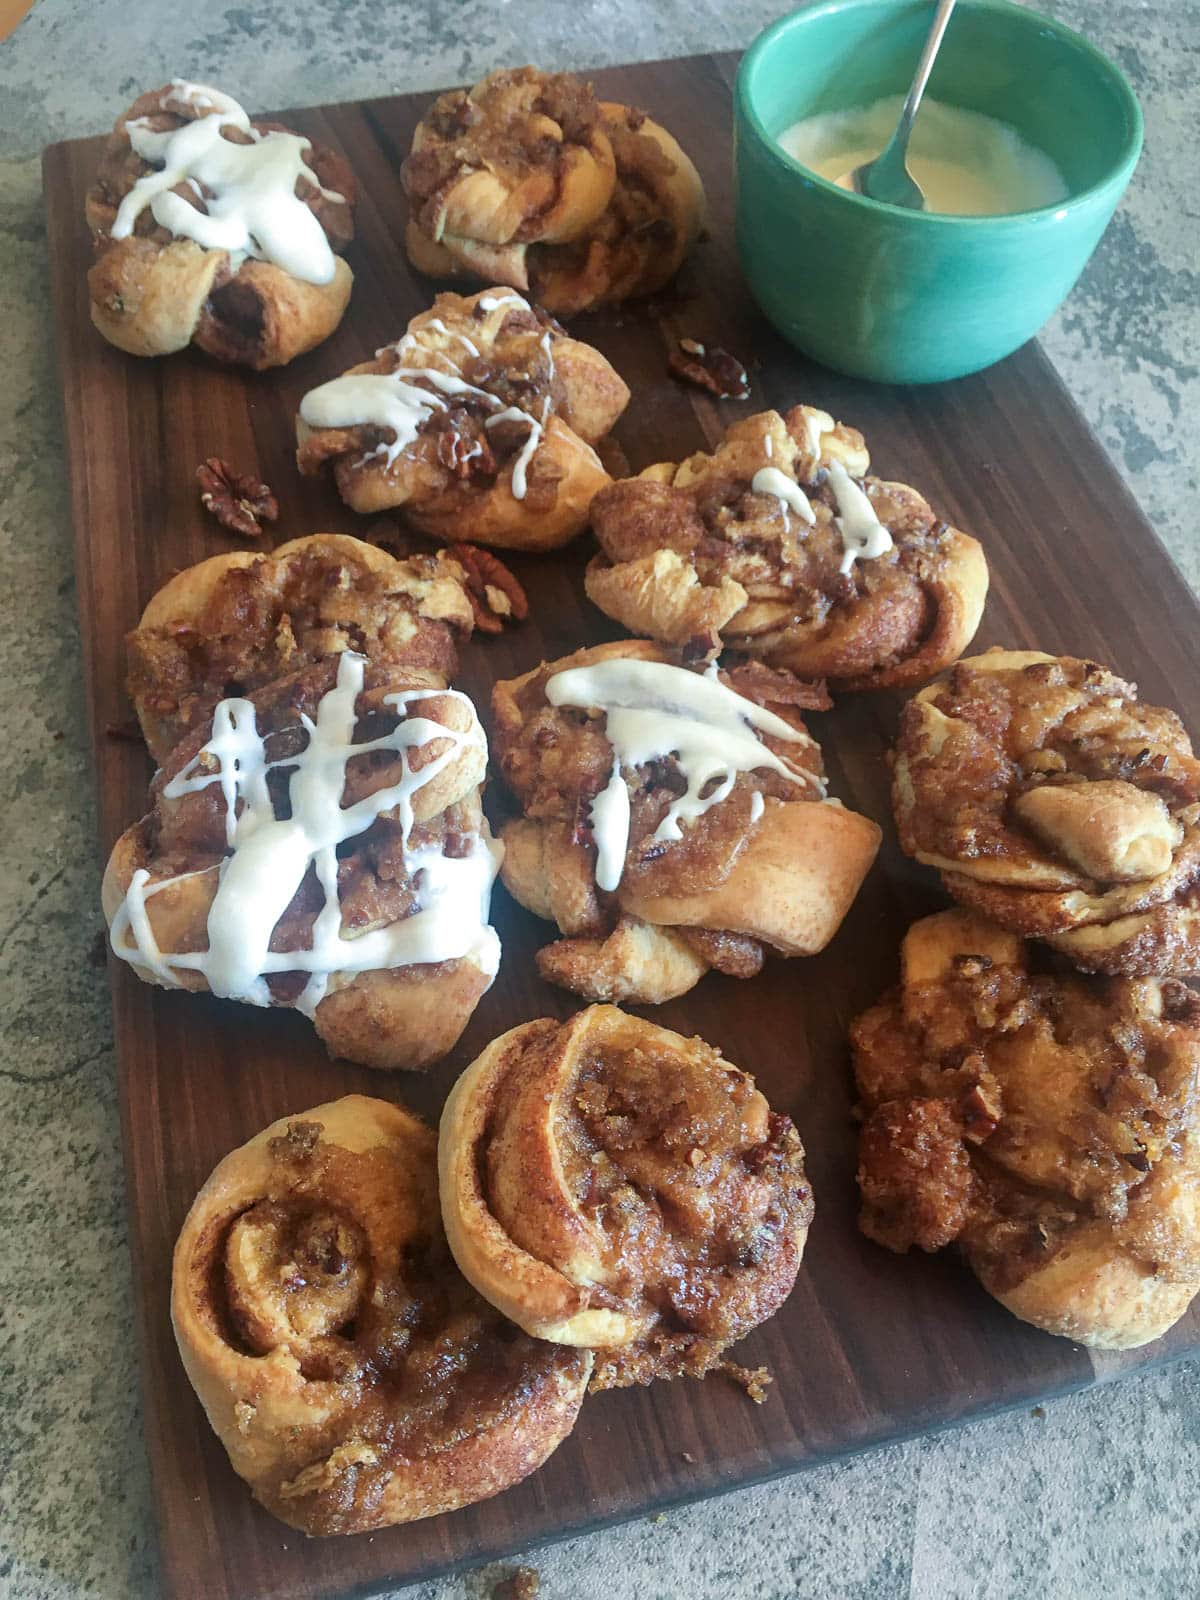 Praline crunch cinnamon rolls on a brown cutting board and a green bowl of icing.